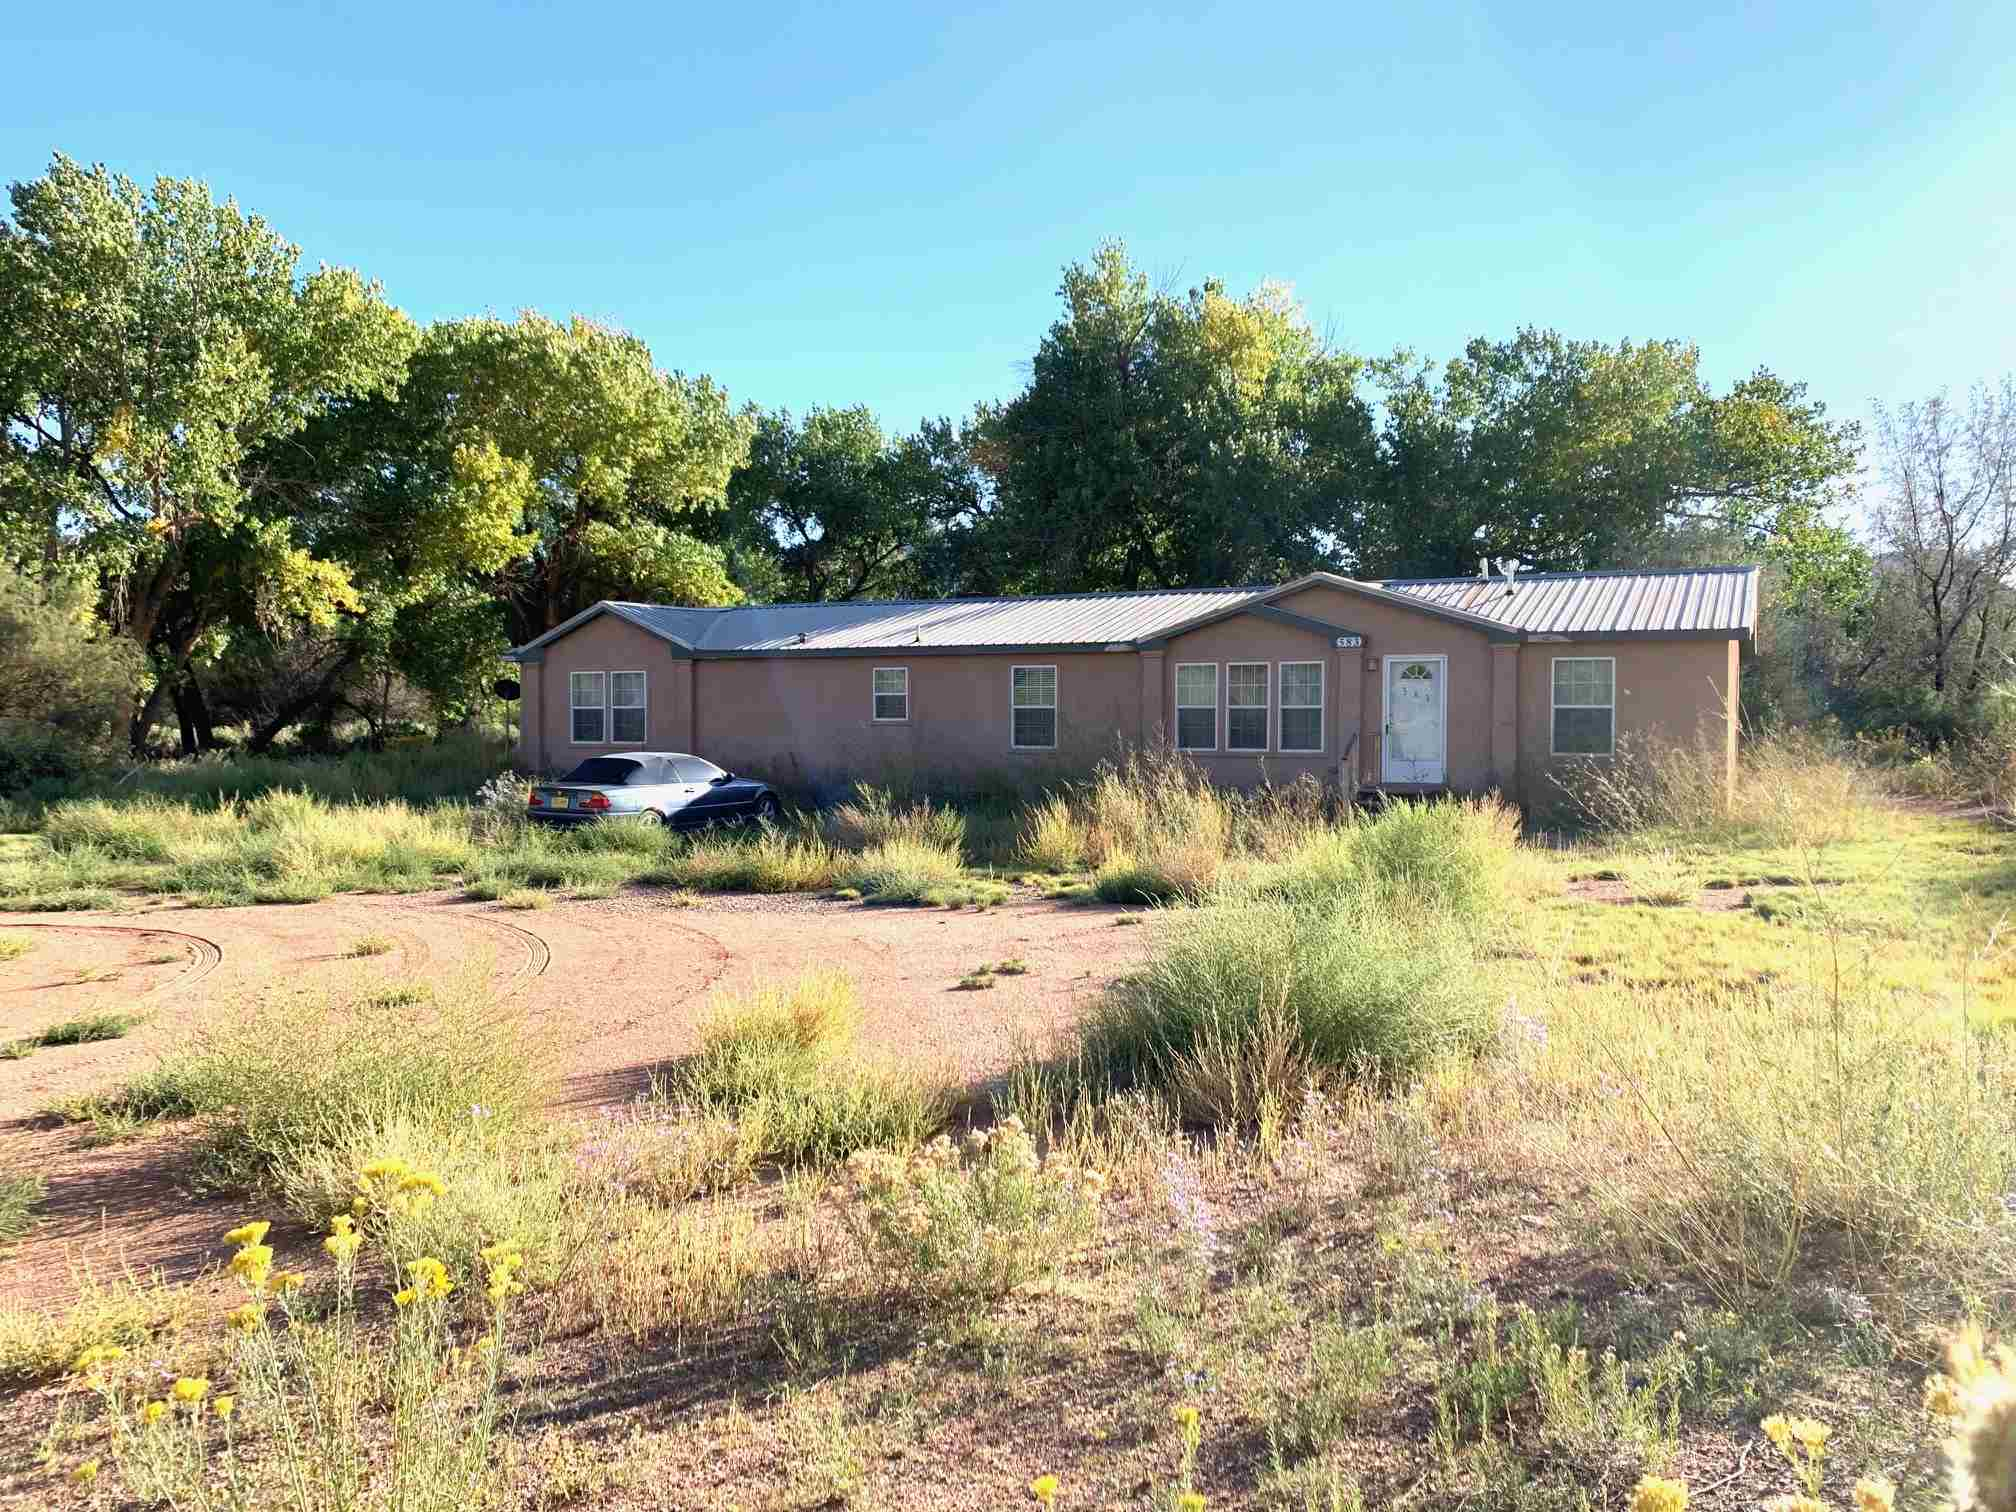 Nice 3-bedroom 2.5 bath manufactured Oak Creek home with two living areas, office and den off master bedroom. Features include a fire place large separate washer room and open concept living area. Lot is 6.1 acres. Lots of trees in the yard.